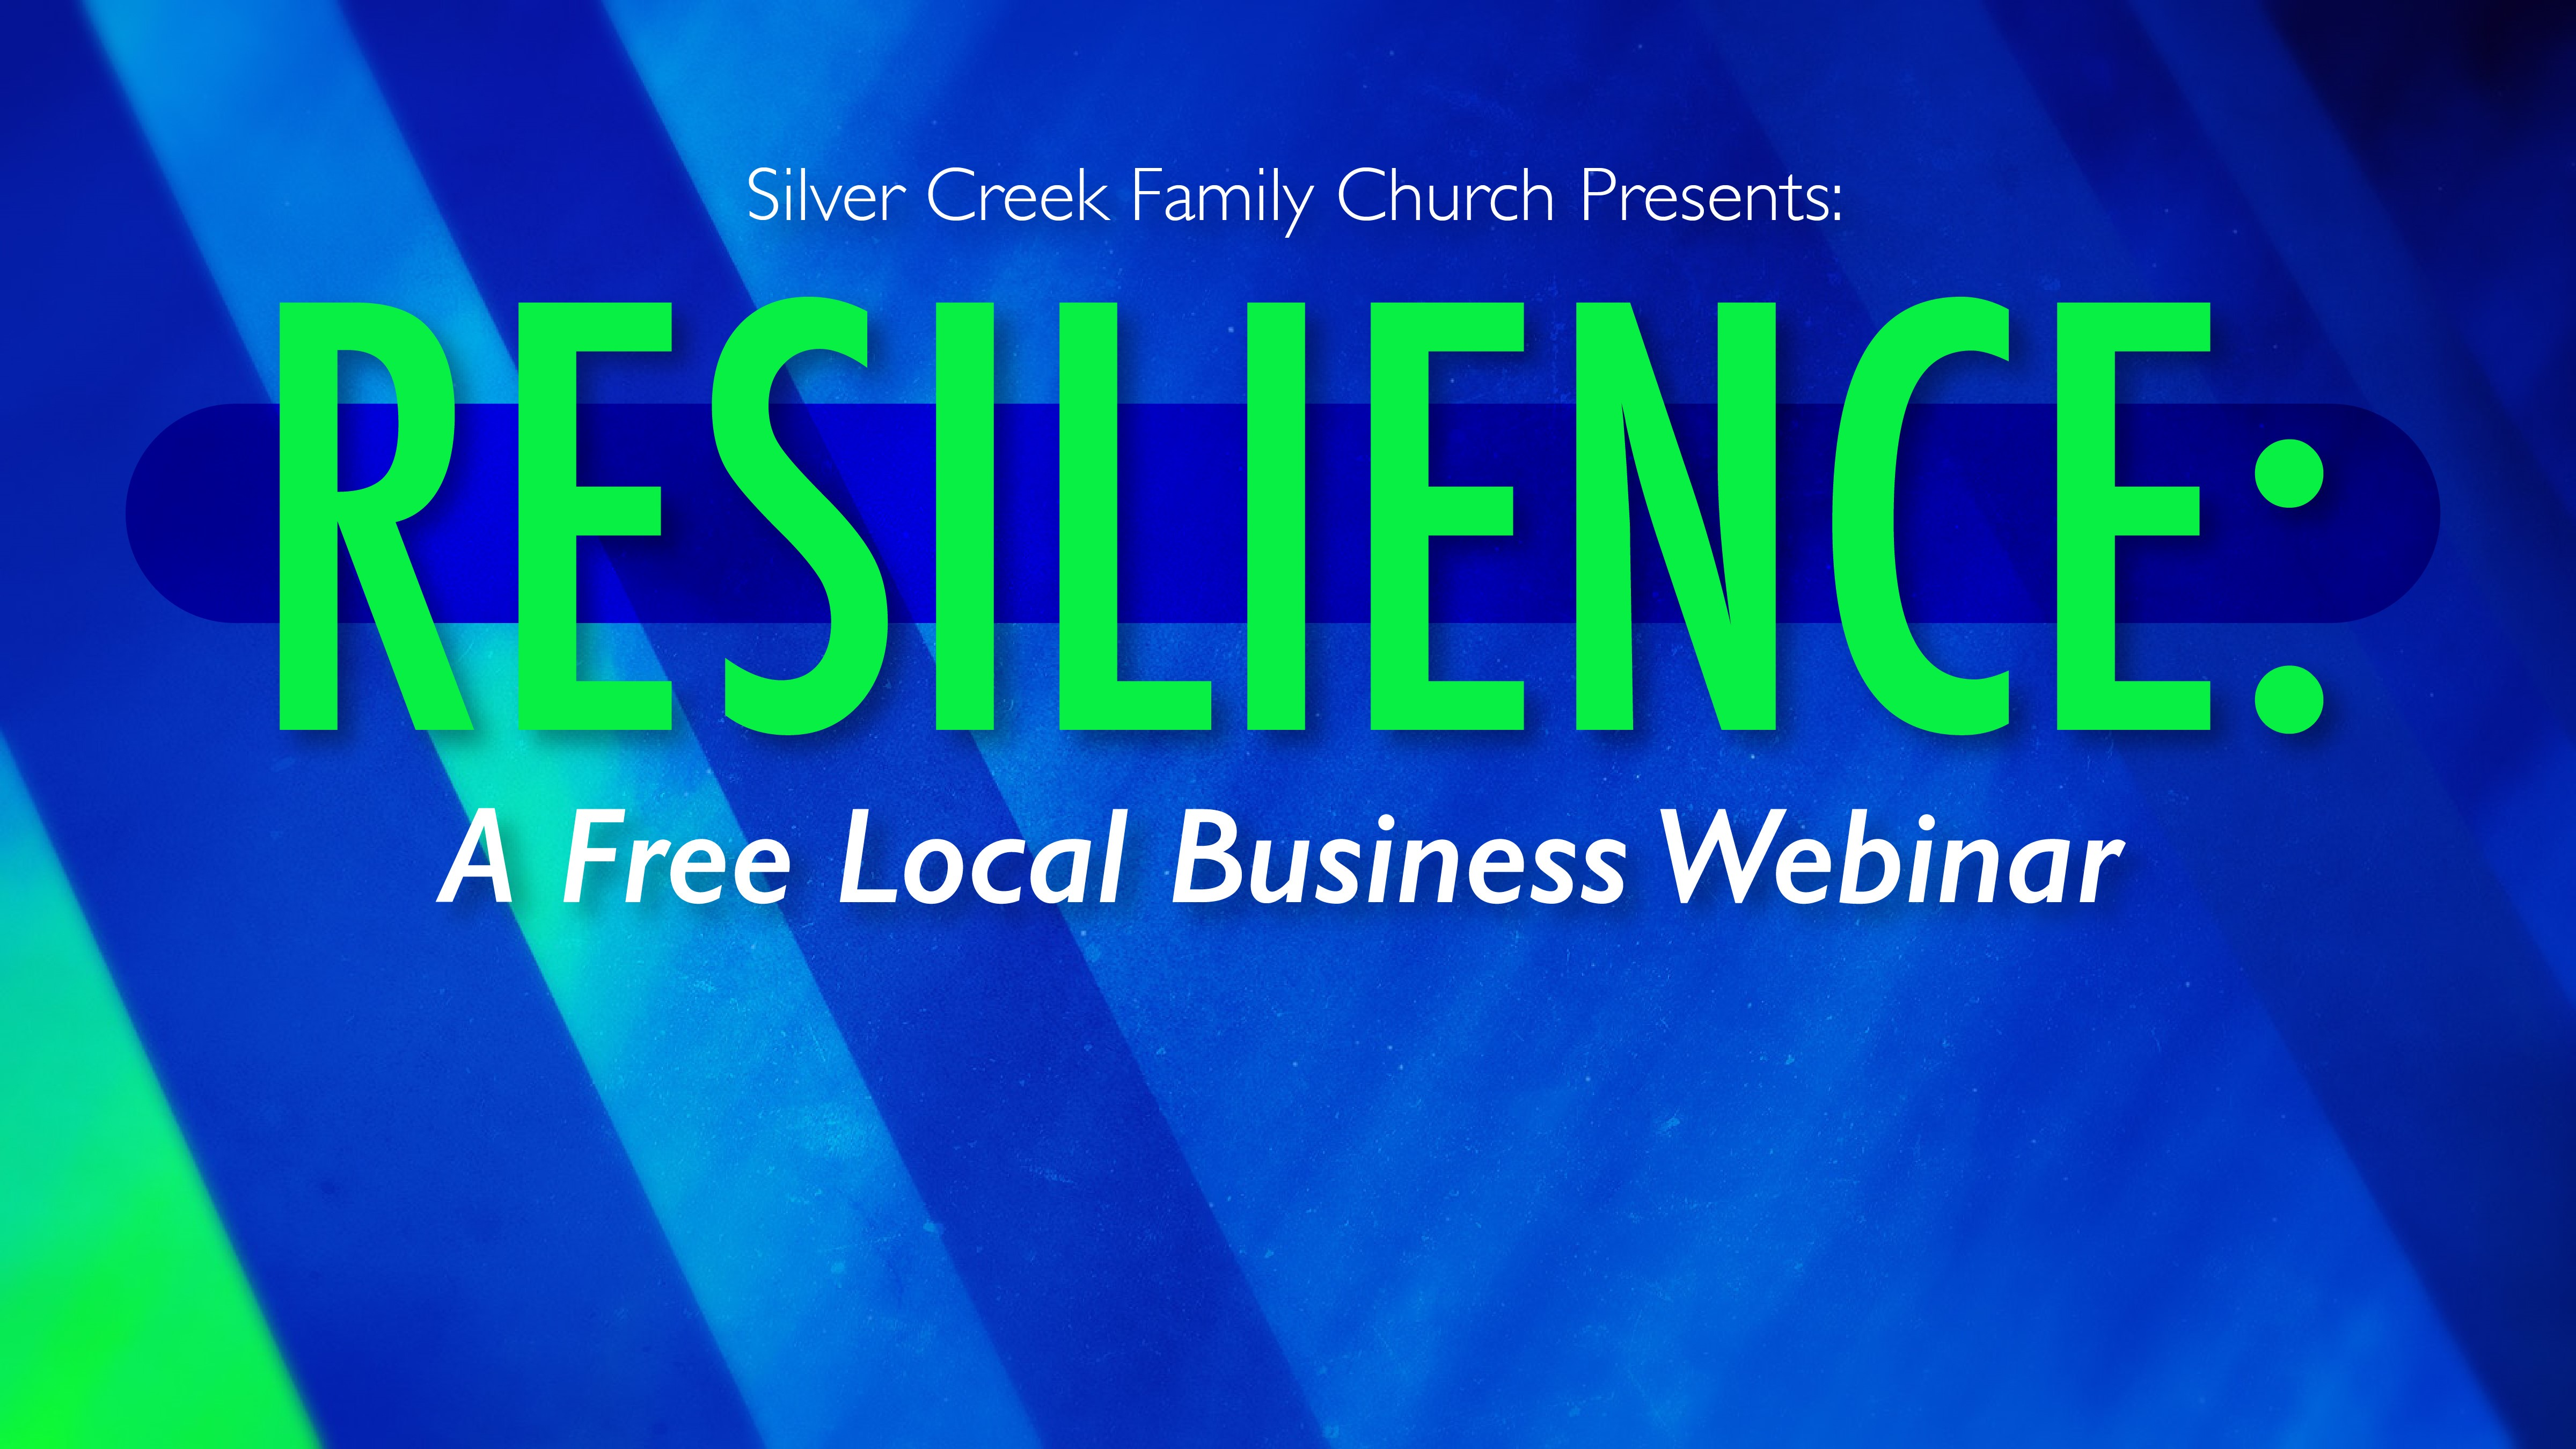 RESILIENCE: A free local business webinar April 9